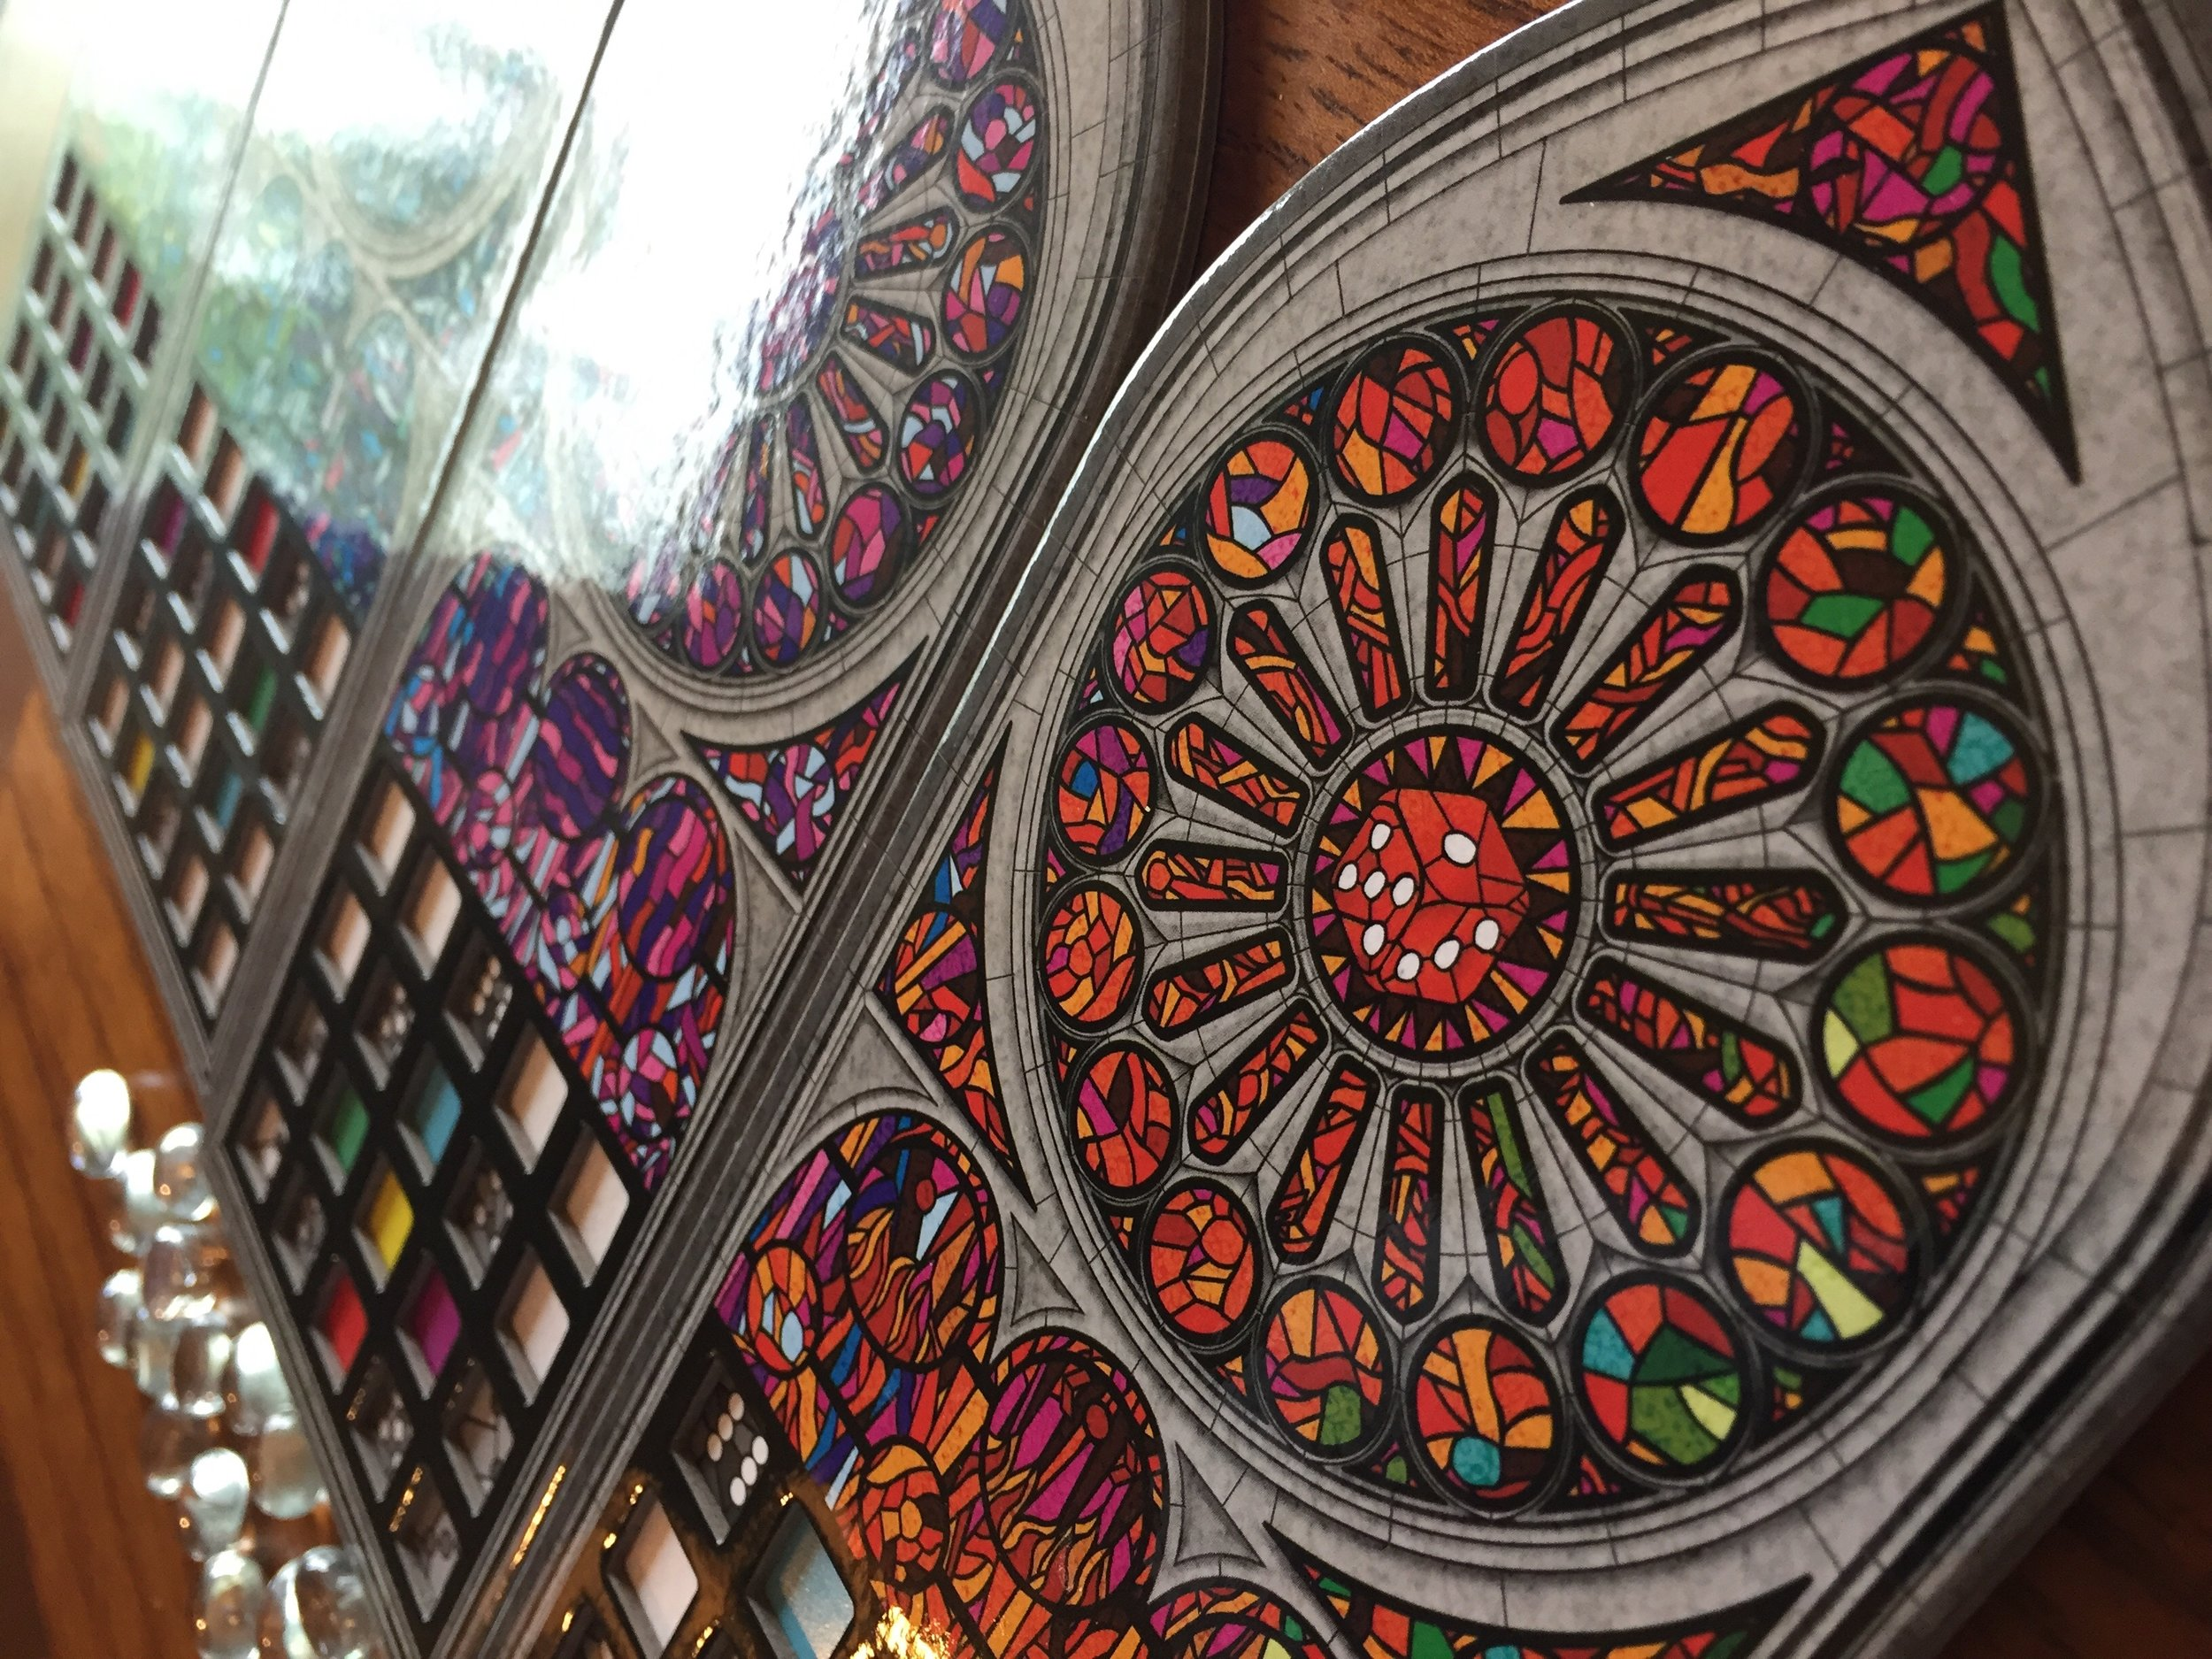 Sagrada's art design is stunning. It's almost as fun to look at as it is to play.